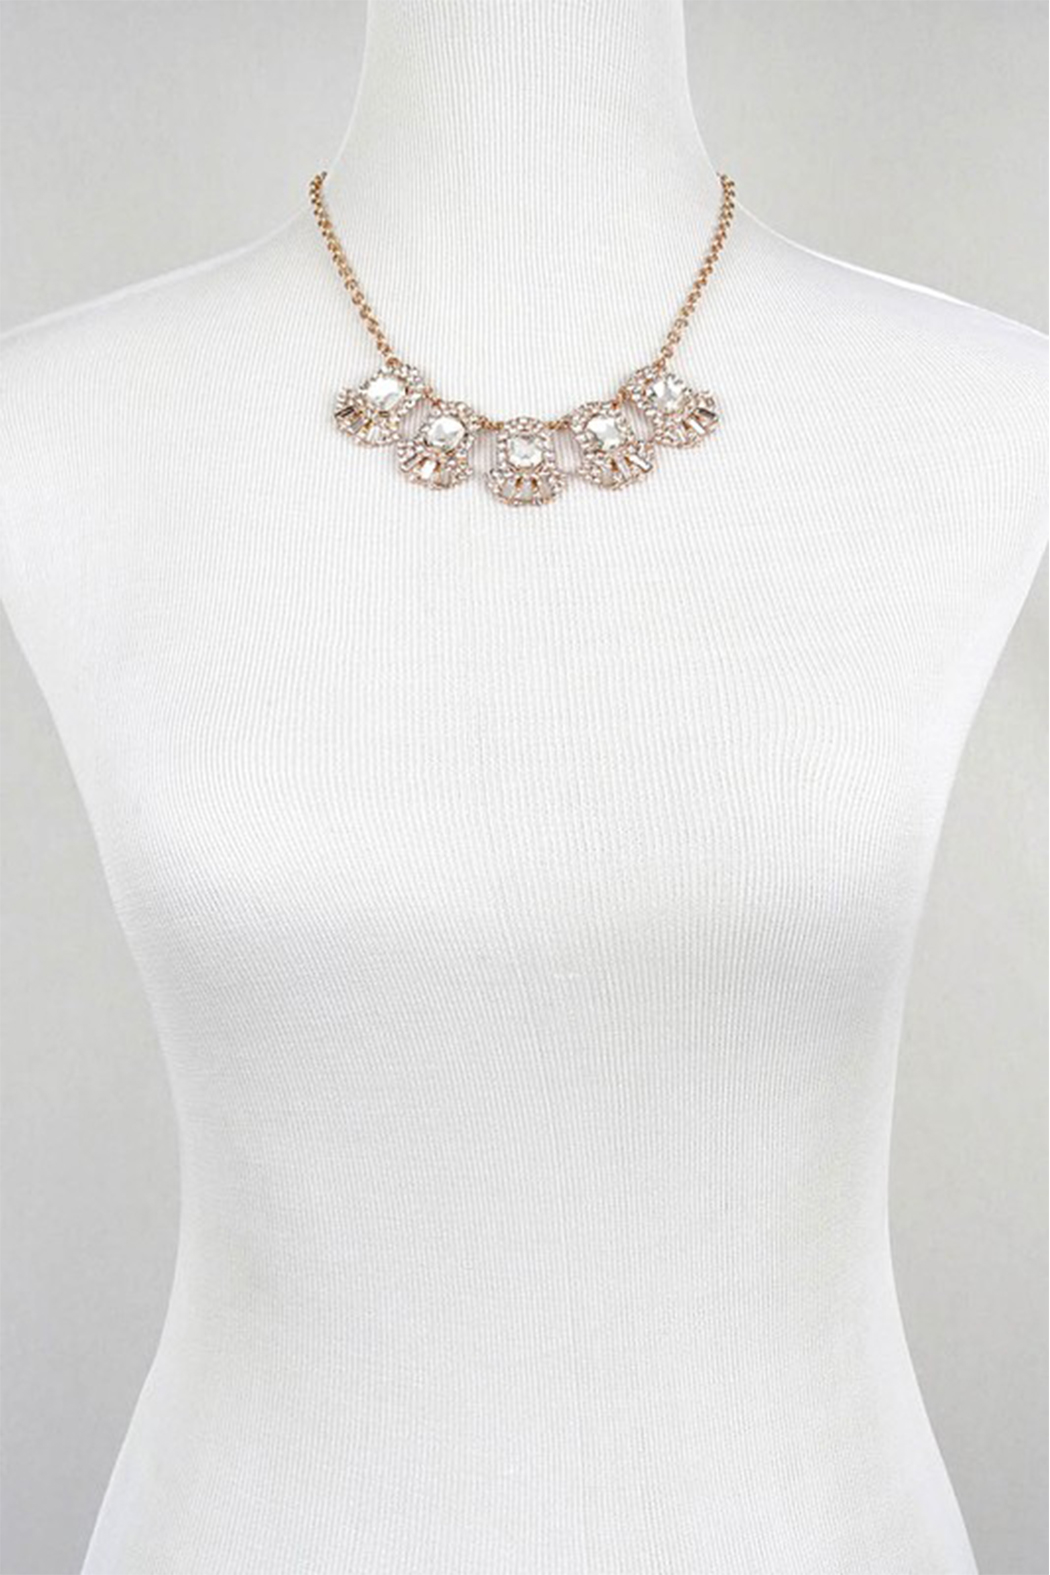 LA3accessories Ornate Statement Necklace - Side Cropped Image